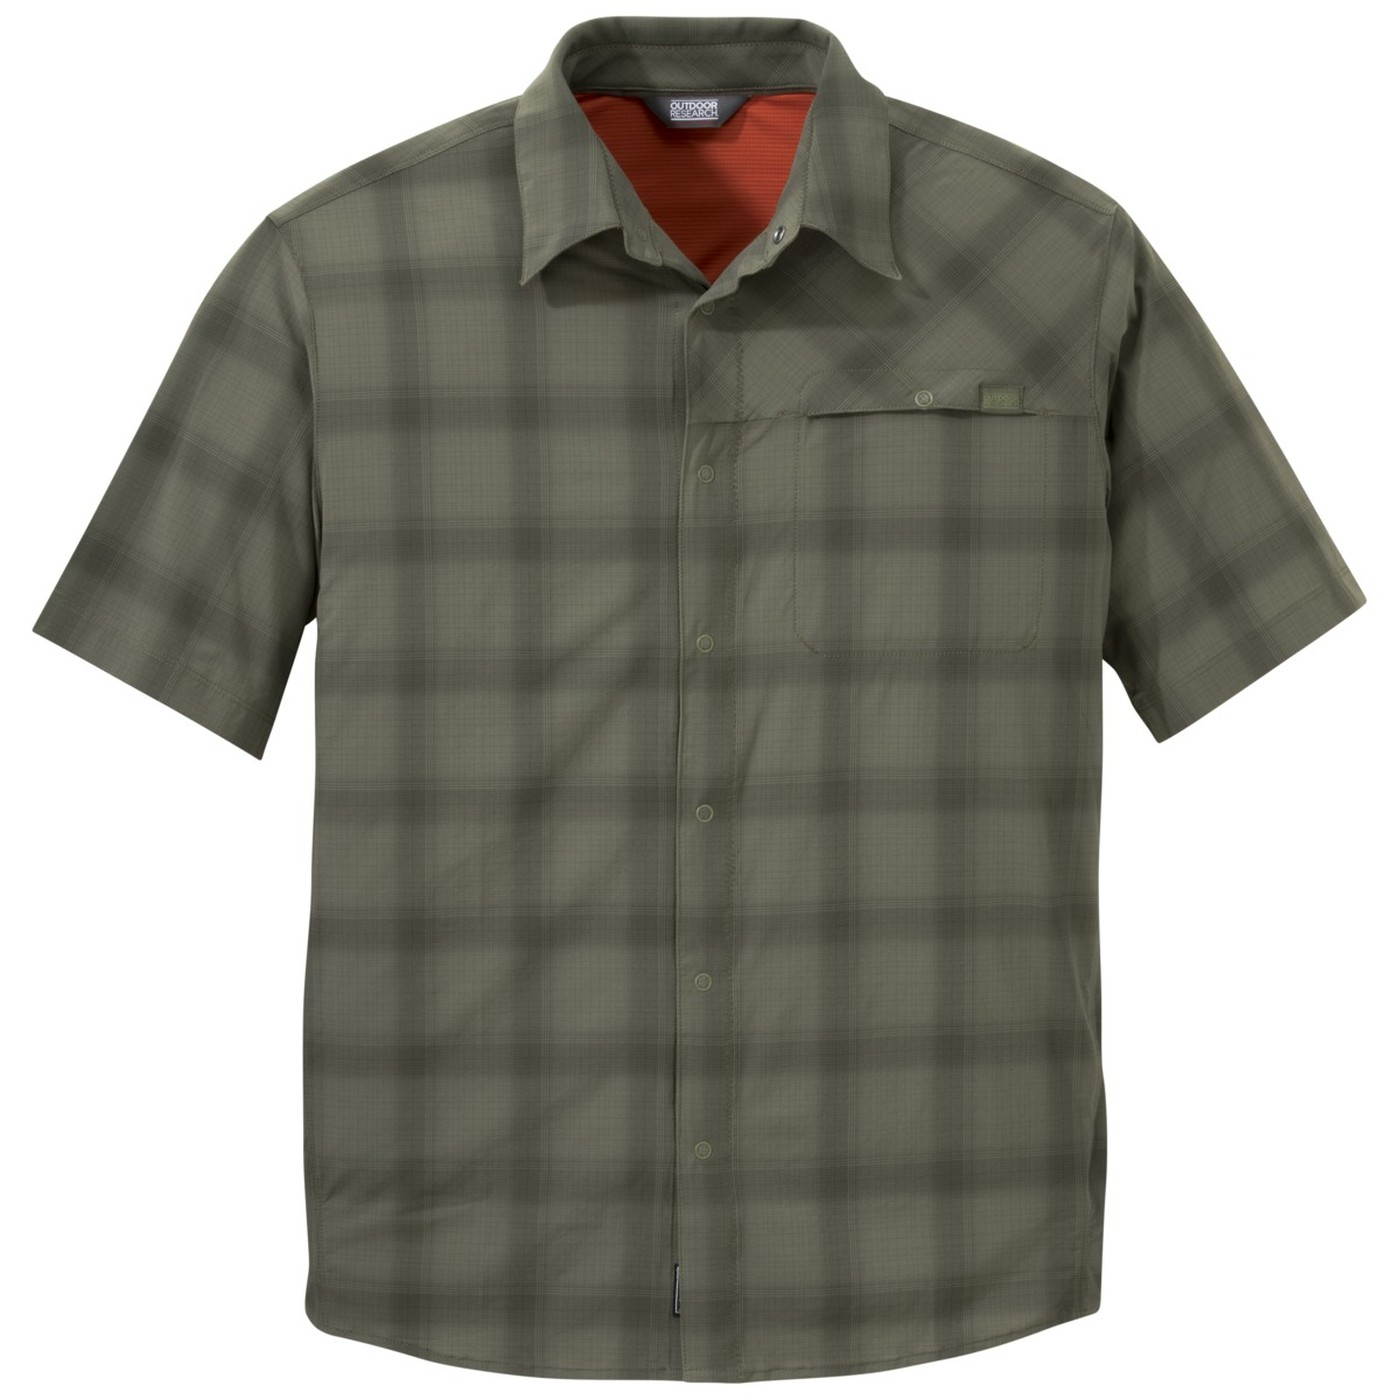 Outdoor Research Men's Astroman S/S Sun Shirt - fatigue - Hemden L